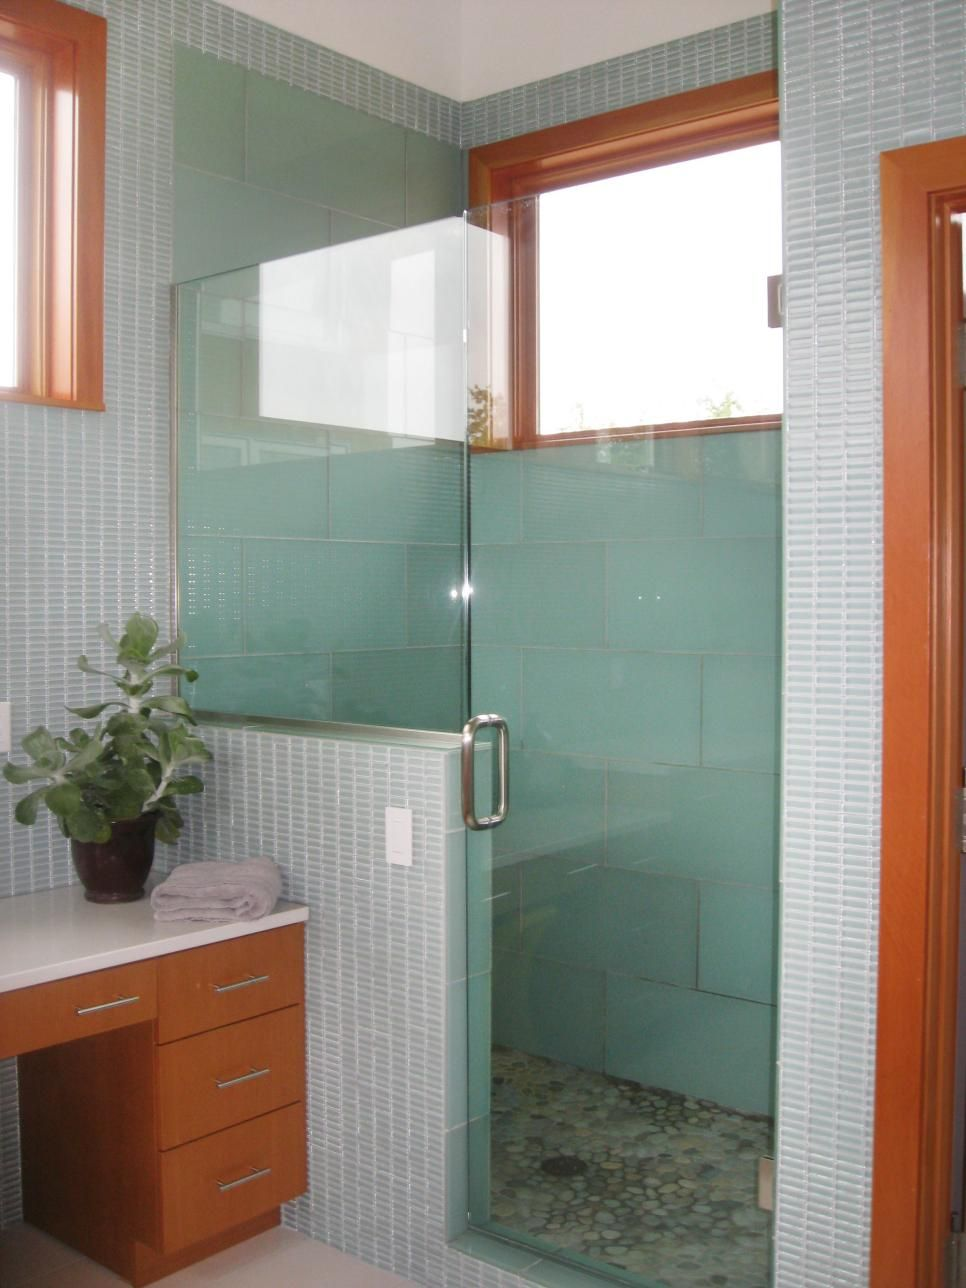 Using large tiles on the shower walls lessens the amount of grout ...